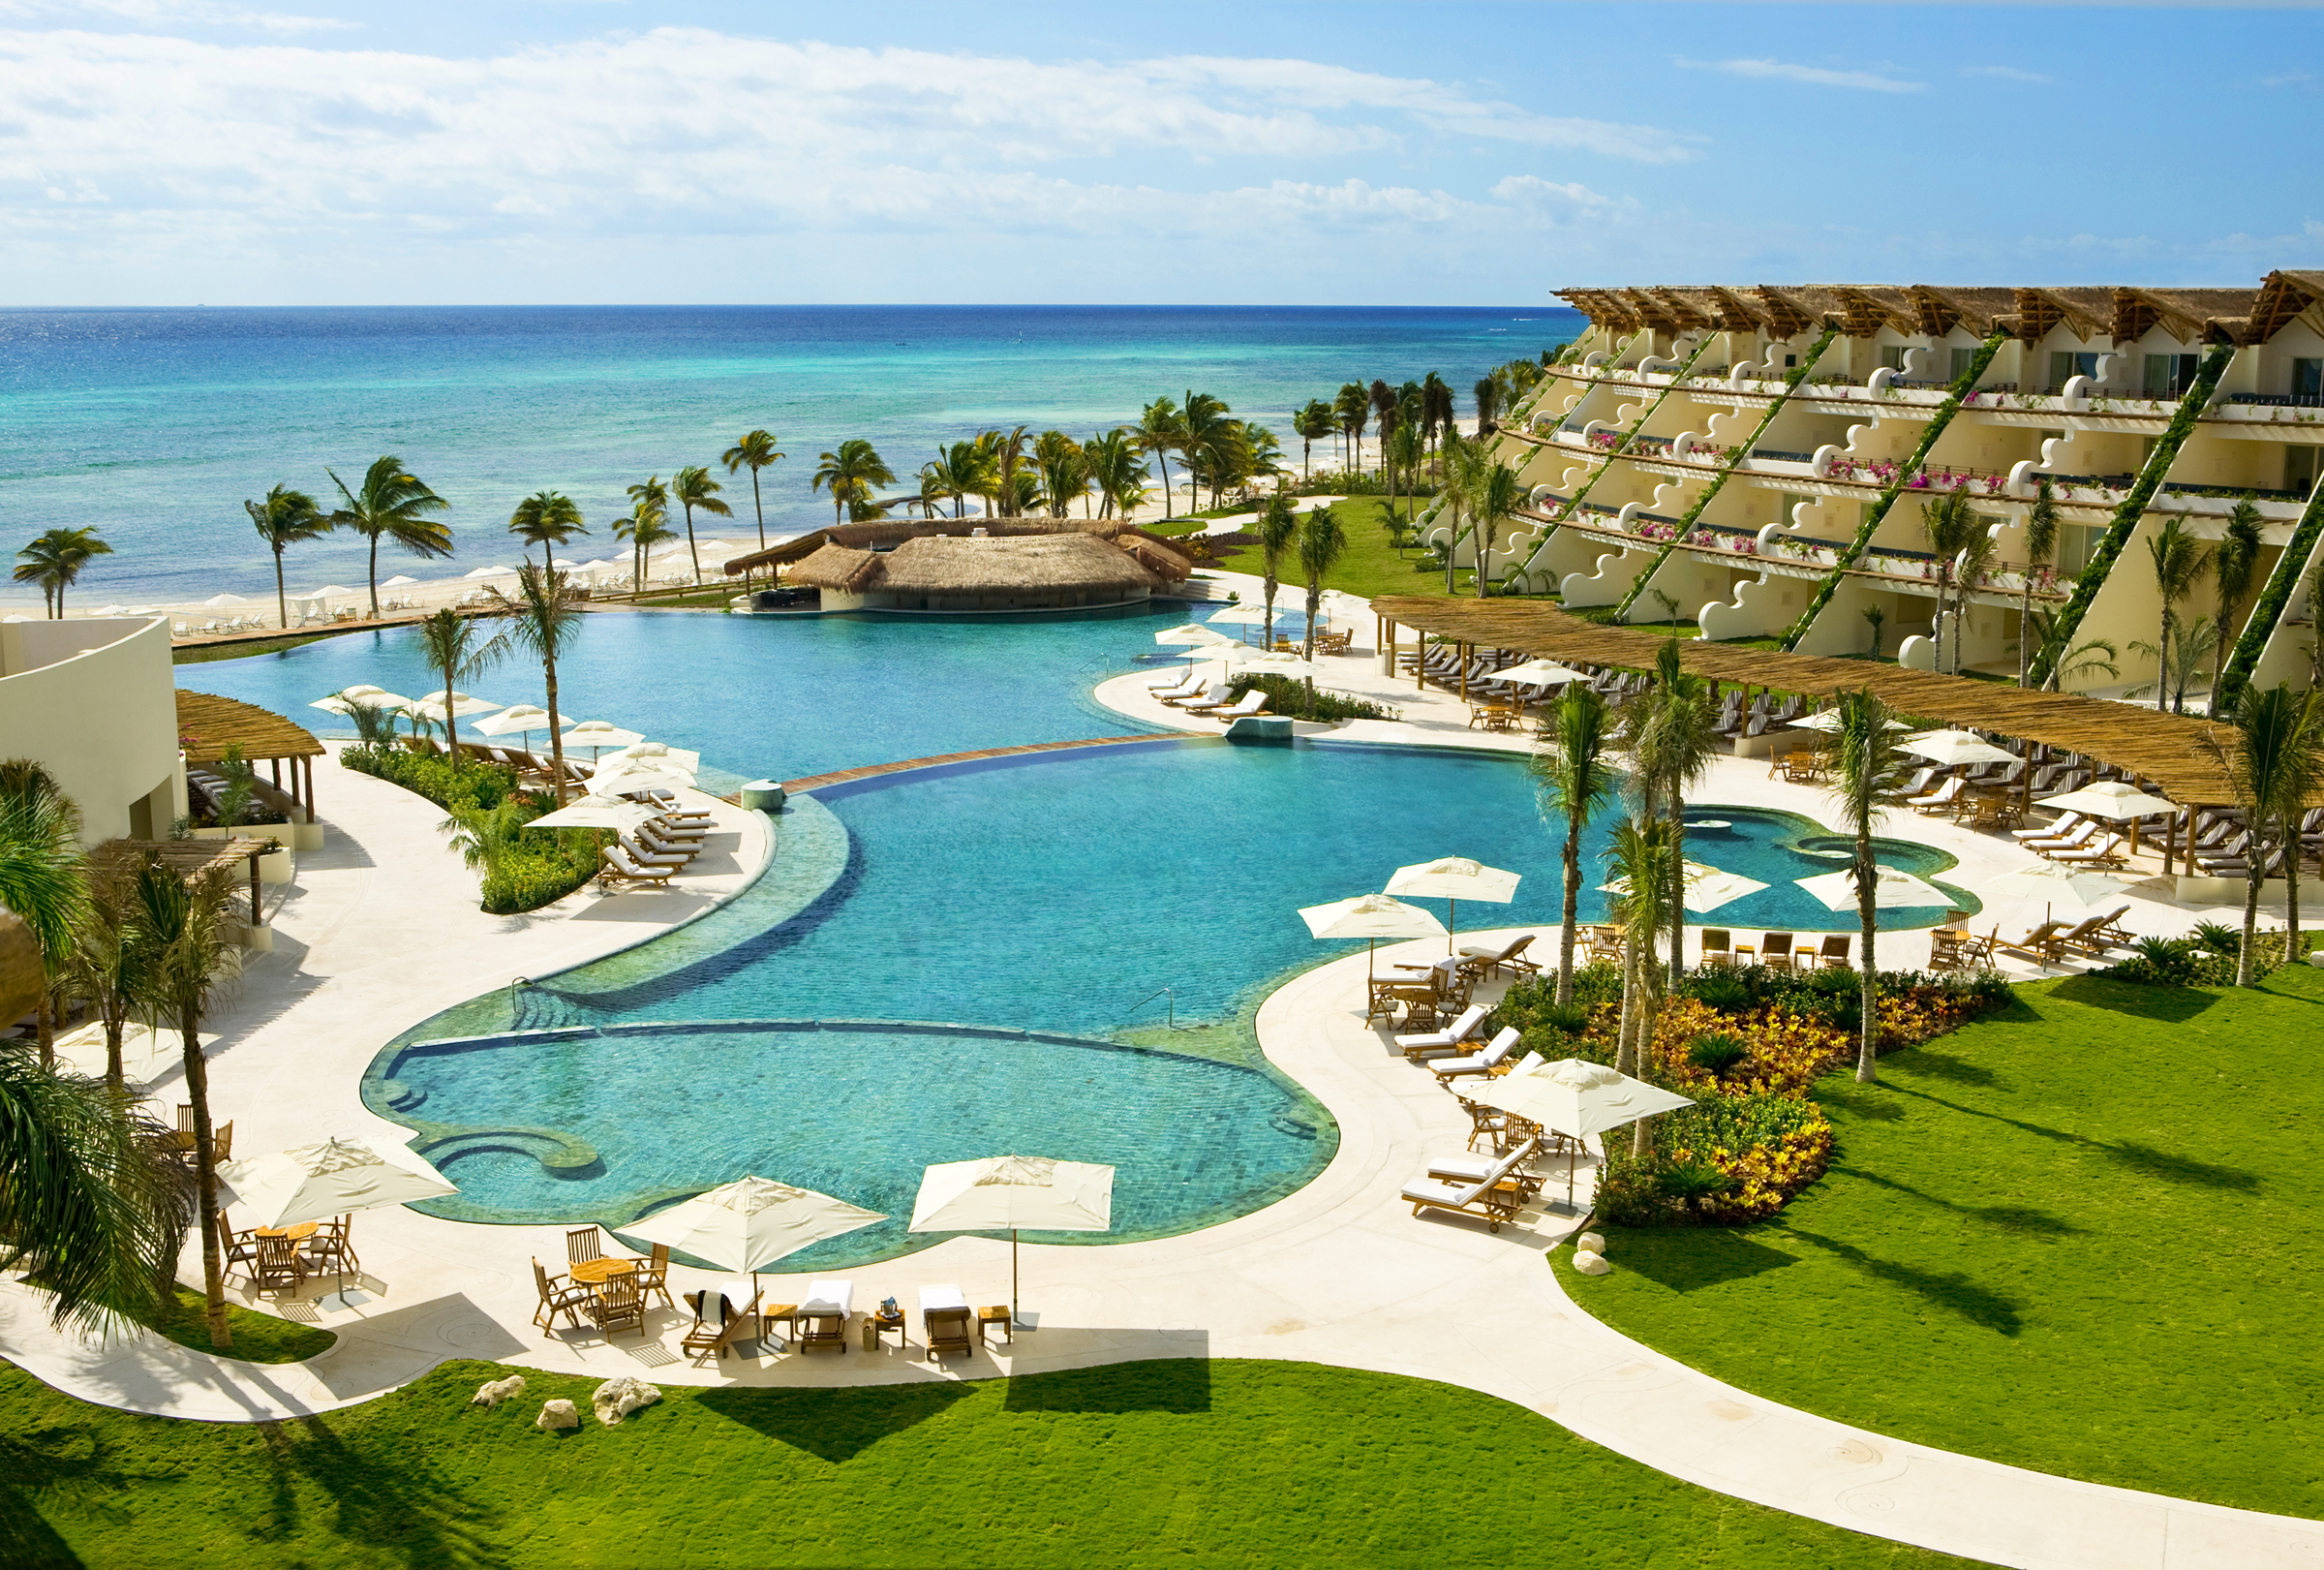 Best Beach Hotels In Playa Del Carmen